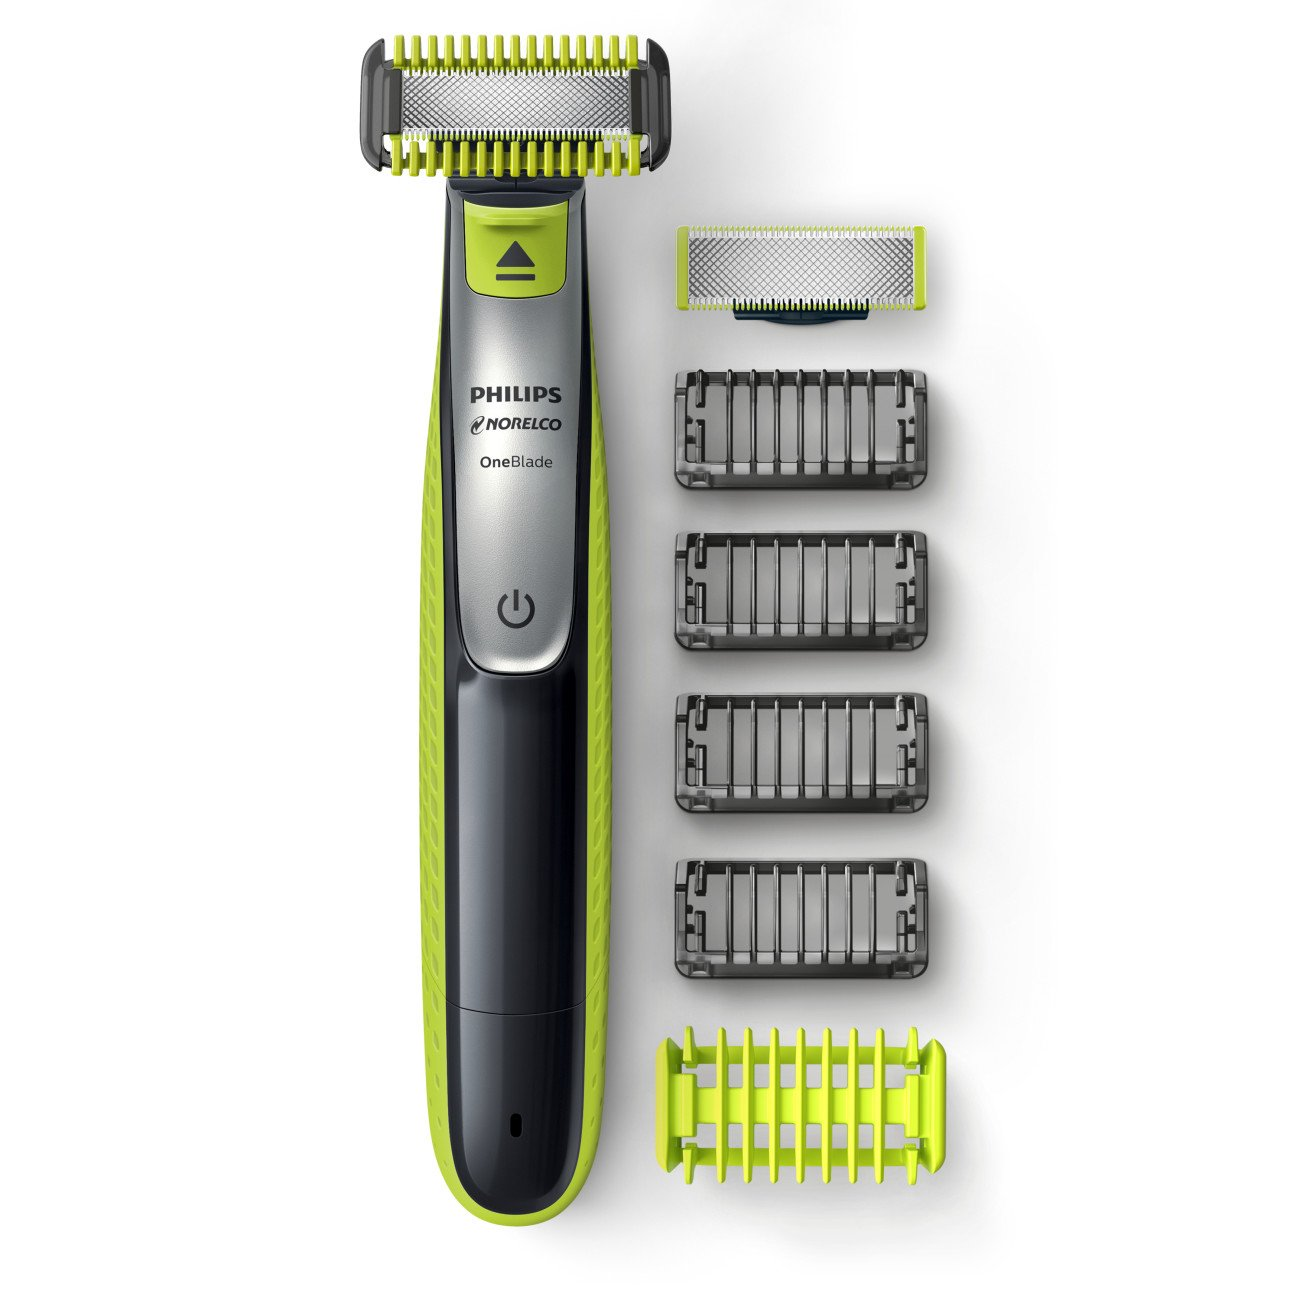 Philips Norelco OneBlade Face Body, Hybrid Electric Trimmer and Shaver, QP2630 70